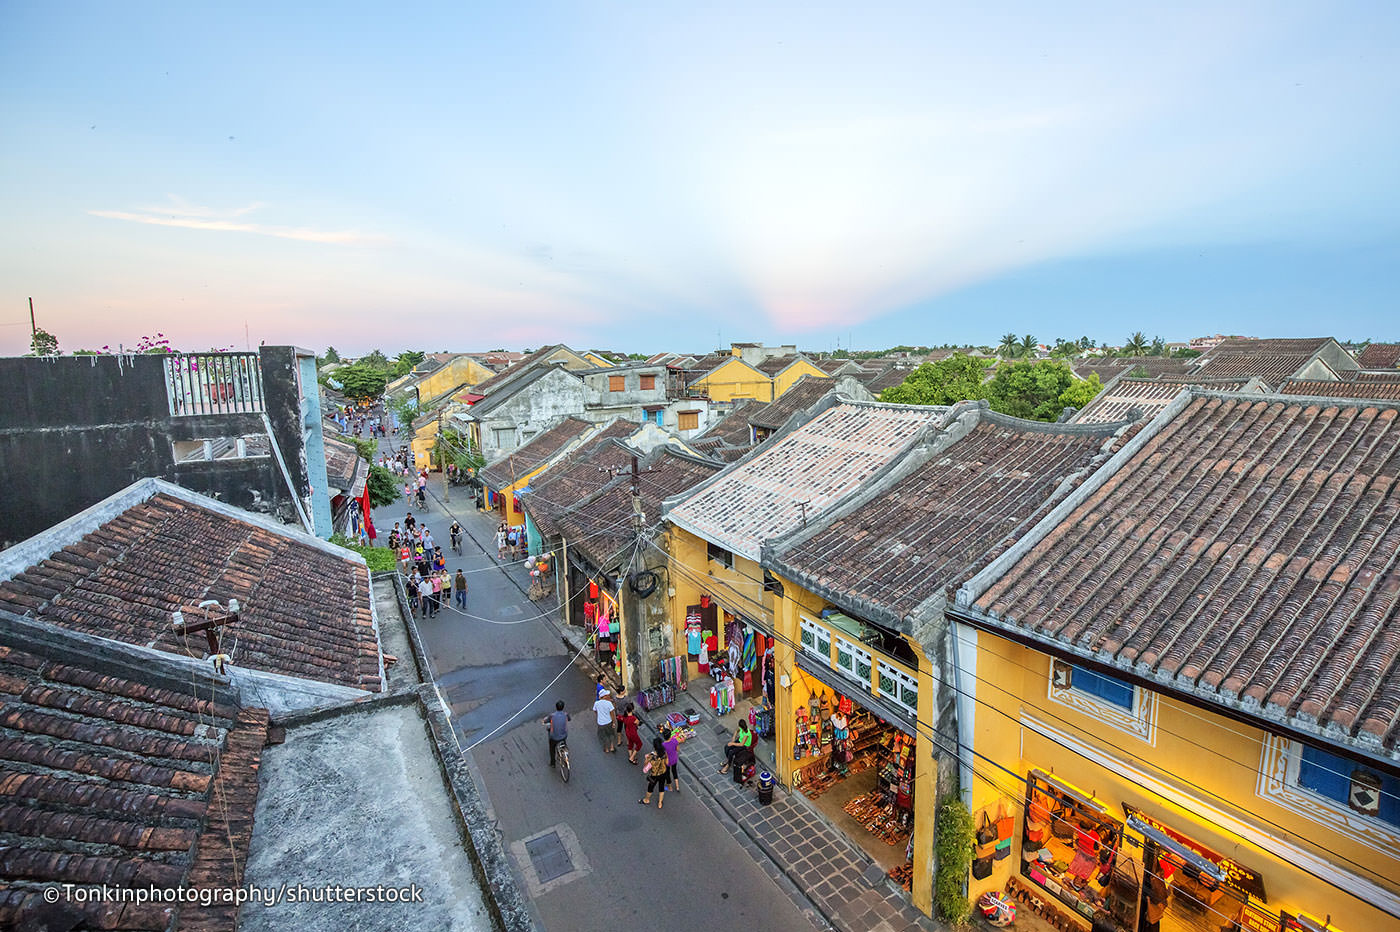 Hoi An Old Town Hoi An, Hoi An Old Town - UNESCO World Heritage Sites in Hoi An